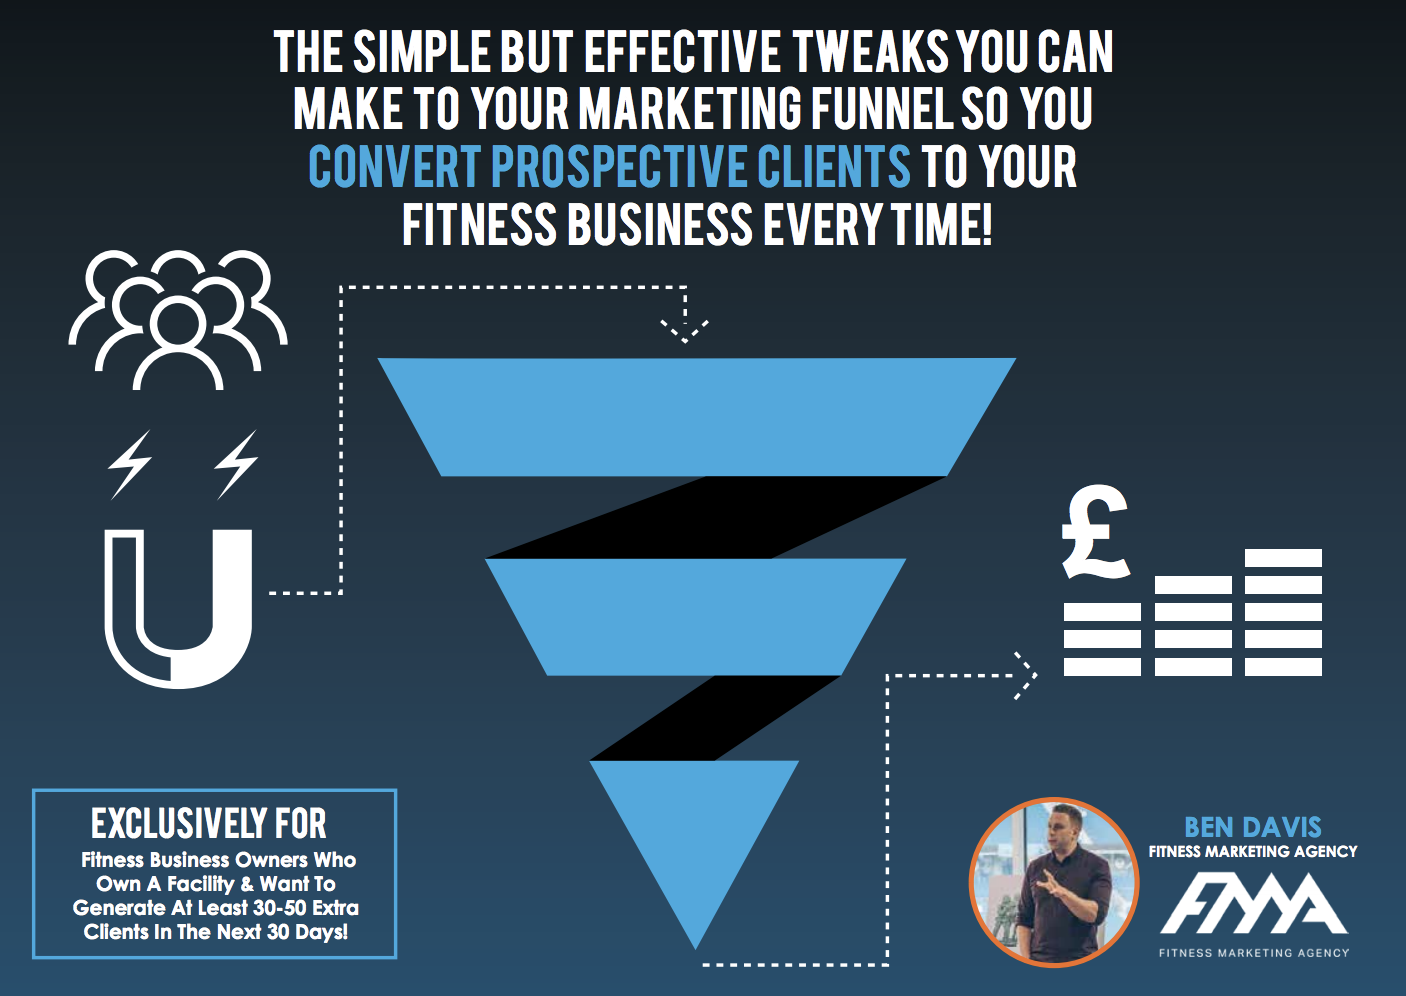 marketing funnel tweaks for your fitness business